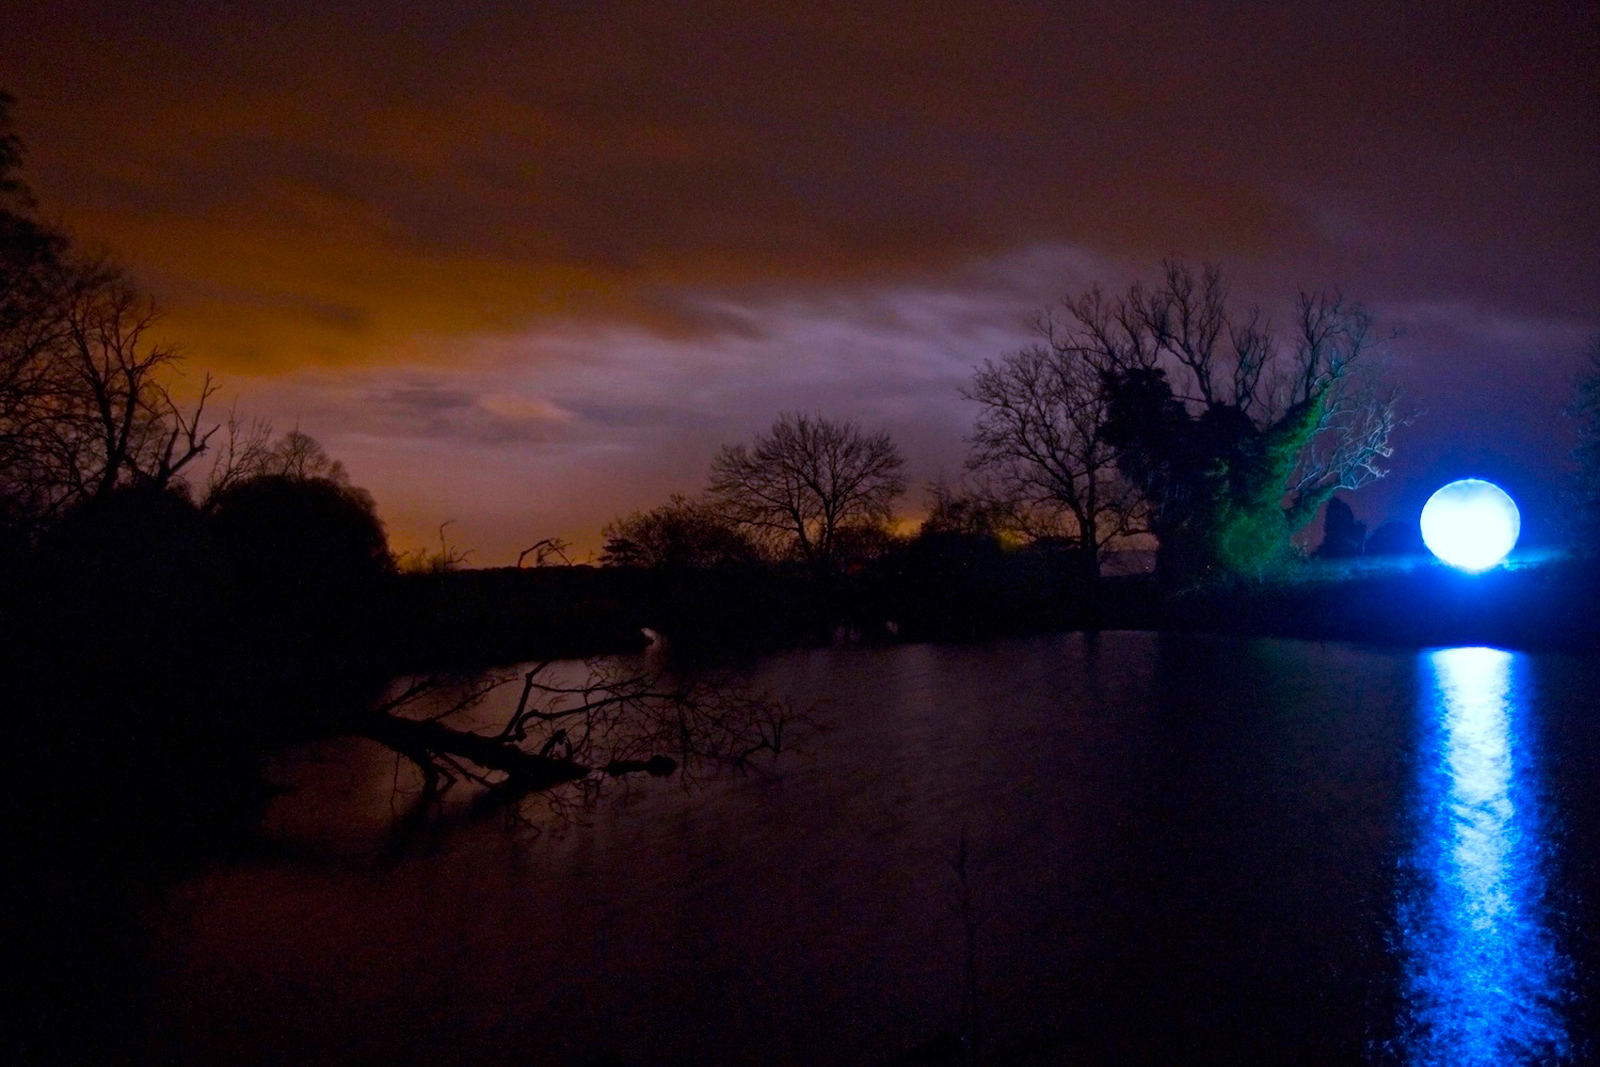 Over the Lake | David Ogle, 2014 | steel frame, plastic sheeting, LED light | installation view: In Another Light, Croft Castle (National Trust), Herefordshire, 2014 | image: courtesy of the artist